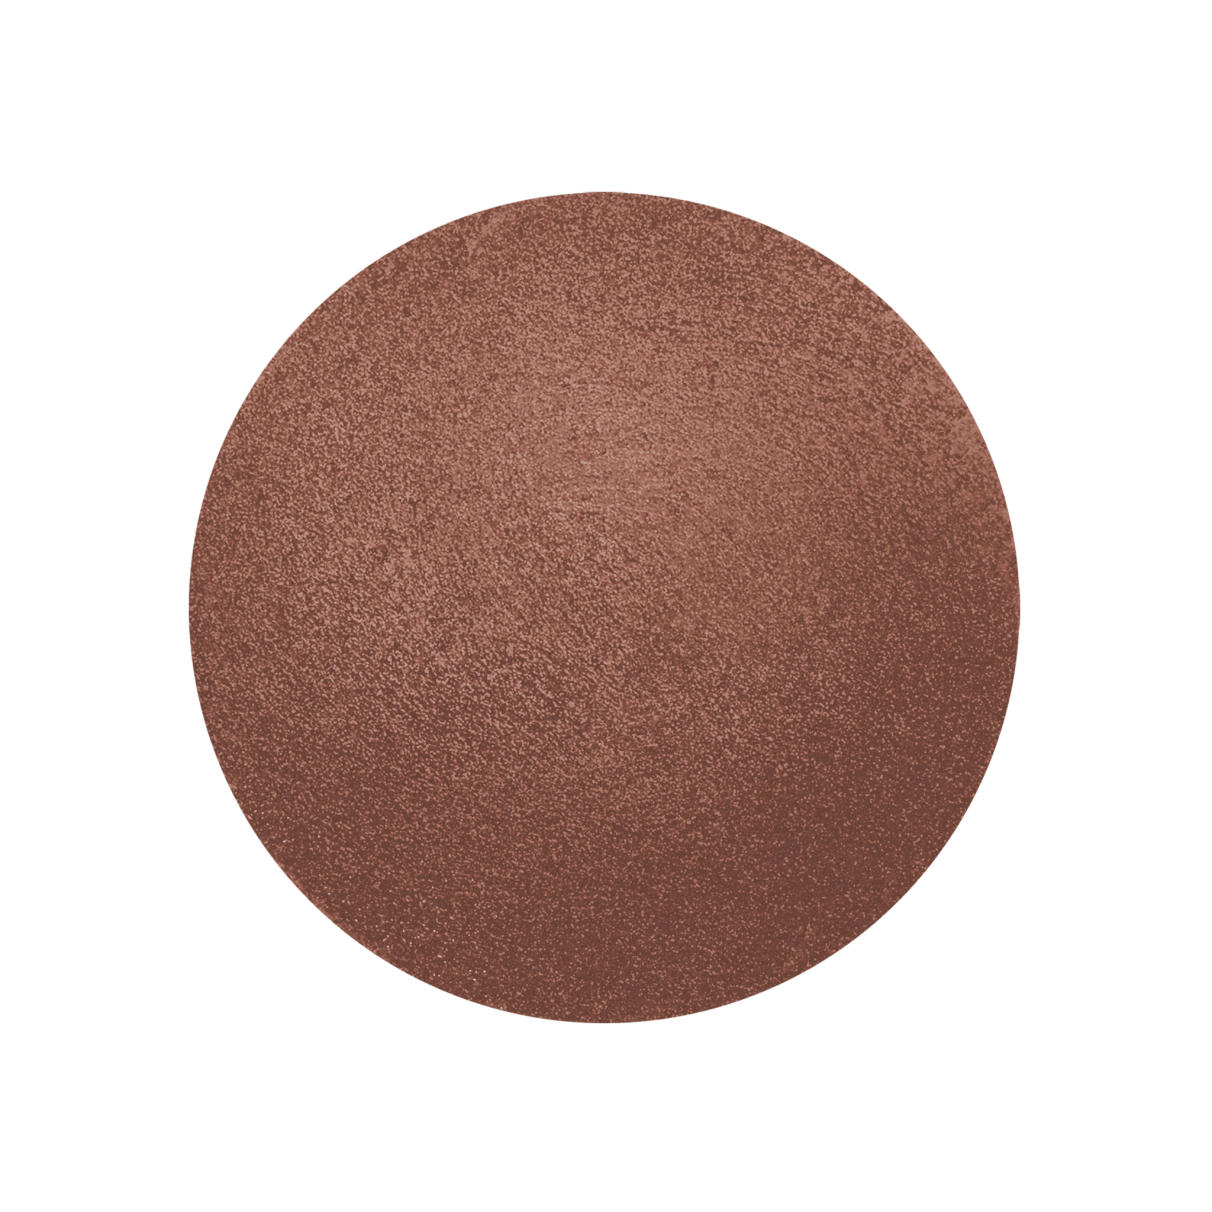 Makeup Forever Artist Eyeshadow Refill Cauldron 654